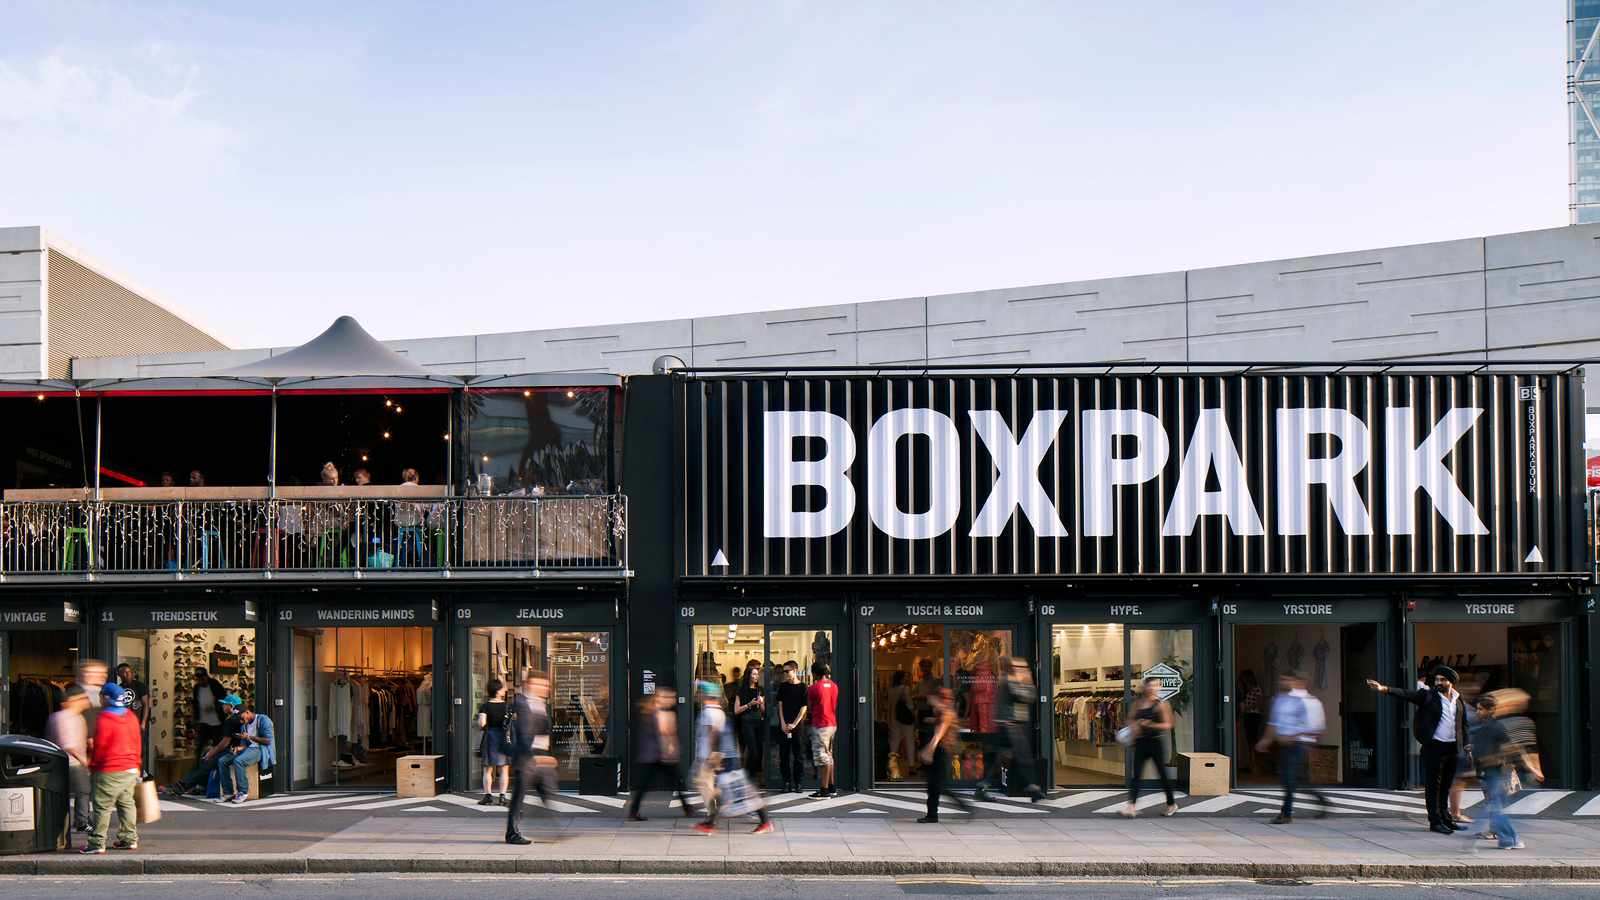 Prestige Cycles will run a pop-up shop at Boxpark in Shoreditch next week